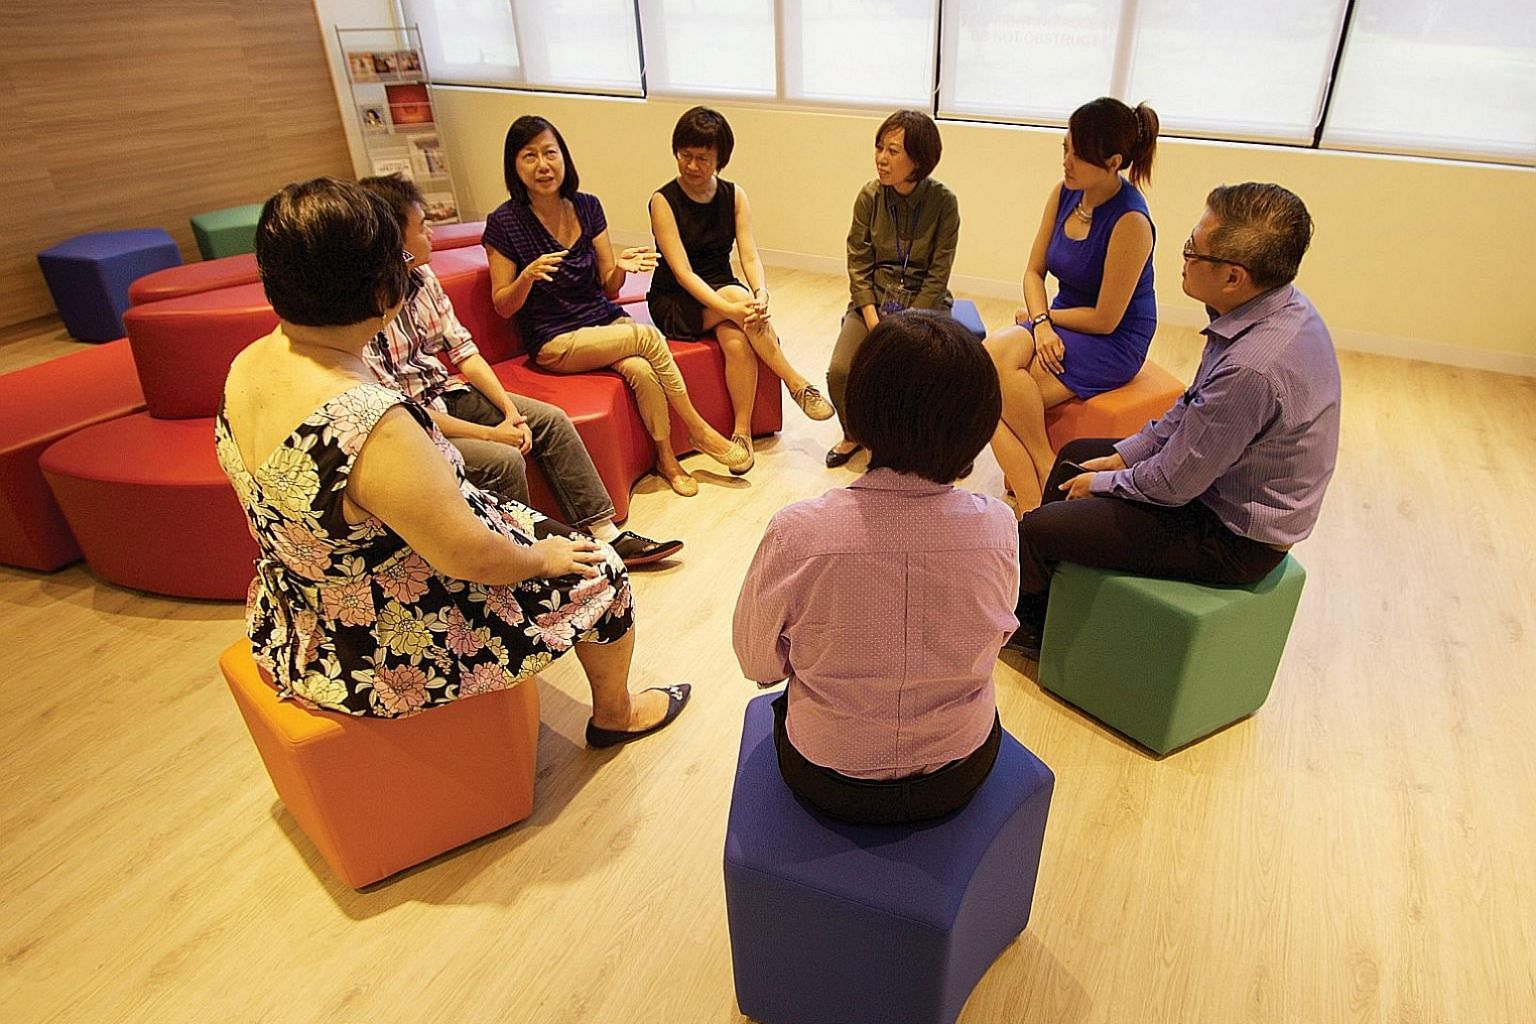 Employee Assistance Programmes include mental health workshops and services like confidential personal counselling.